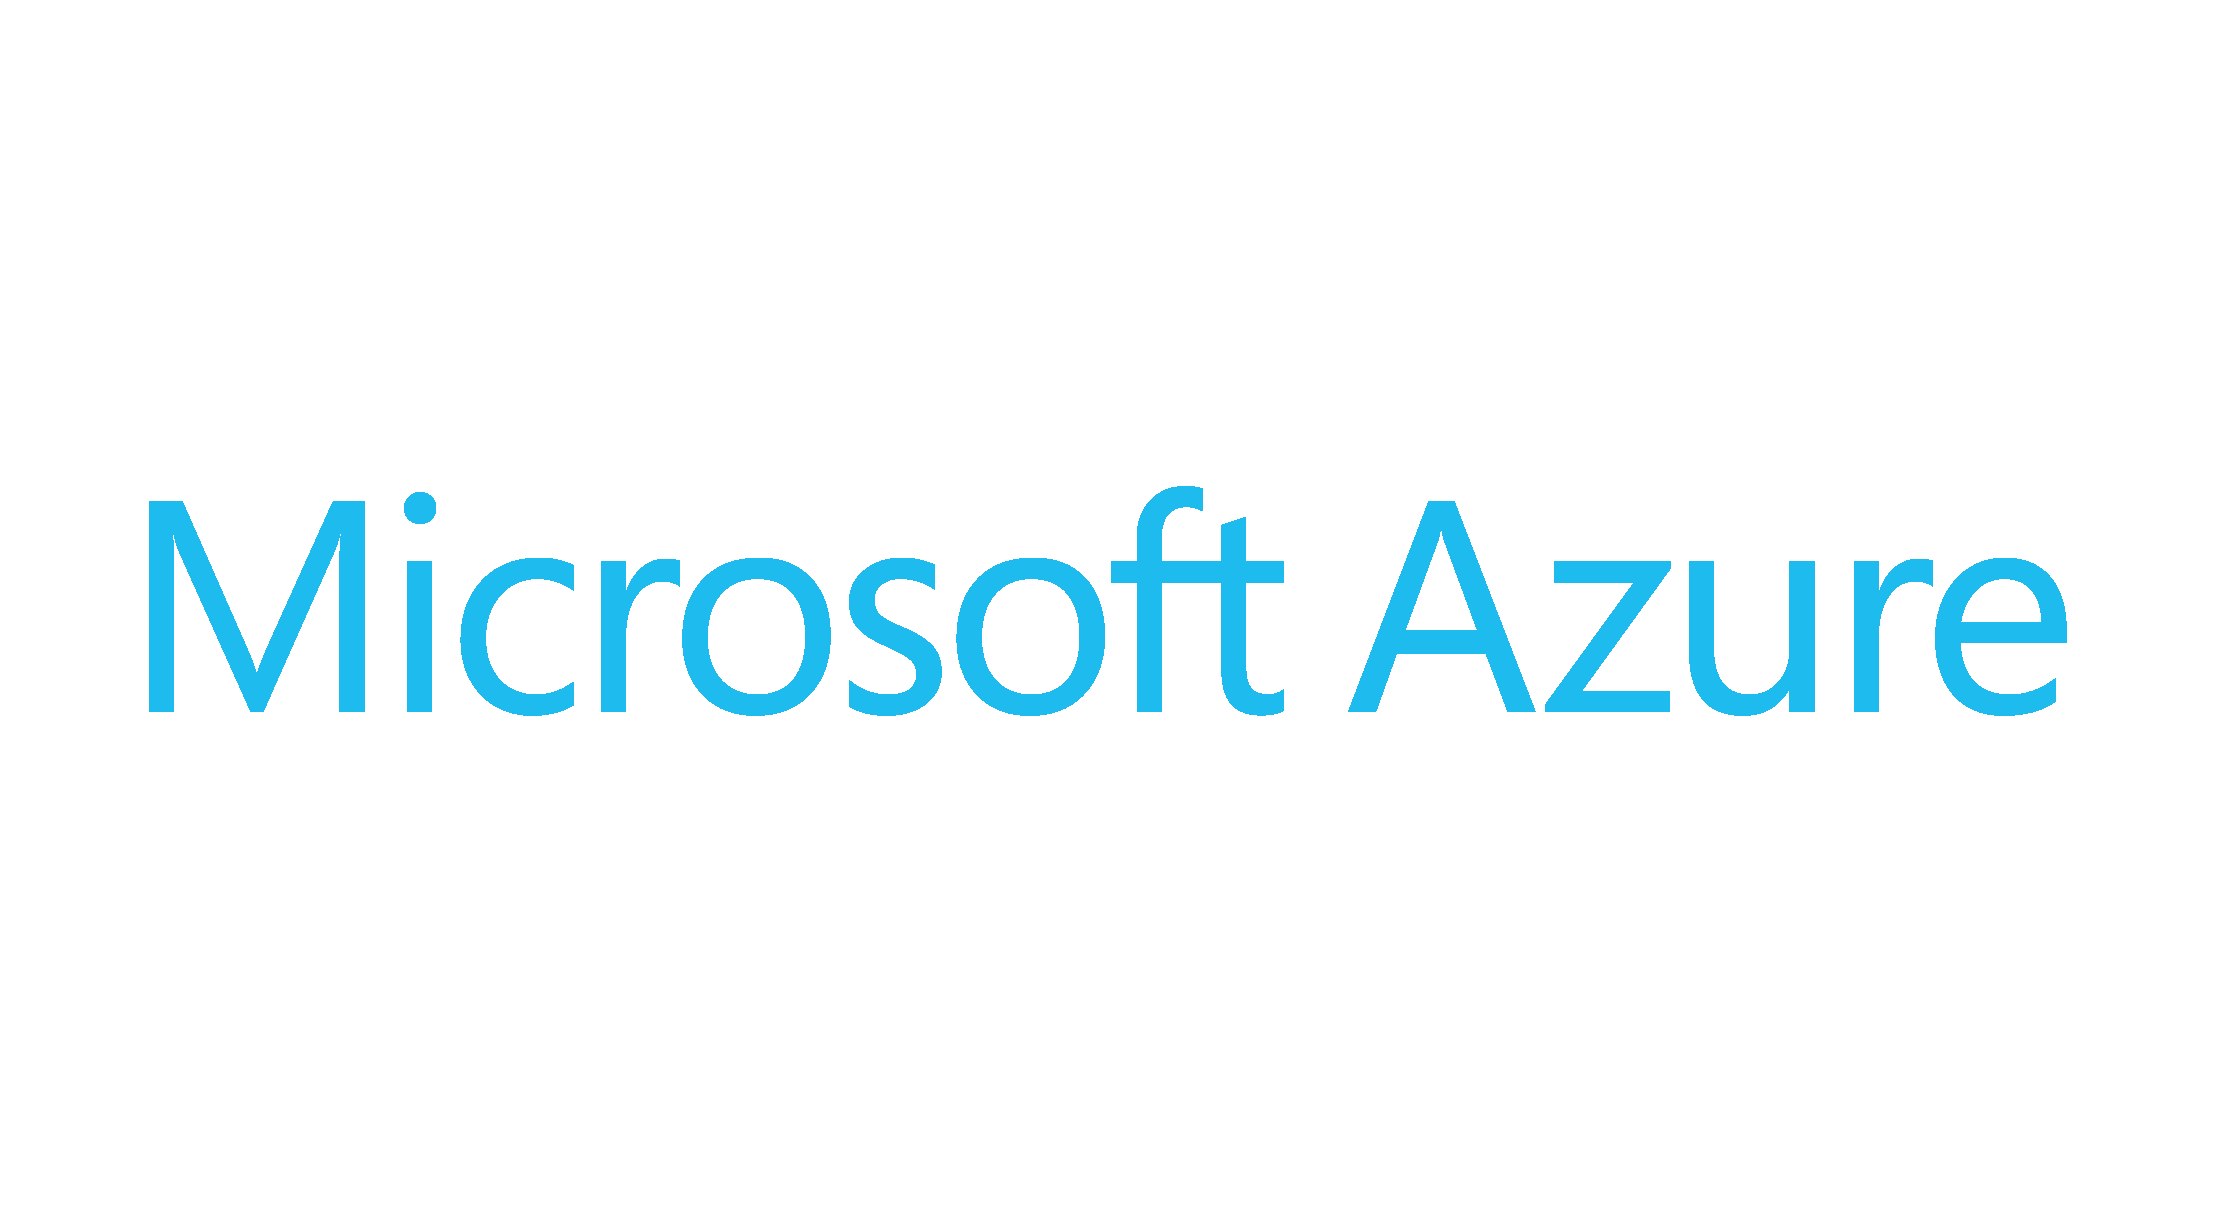 9 Microsoft Azure Logo Vector Images